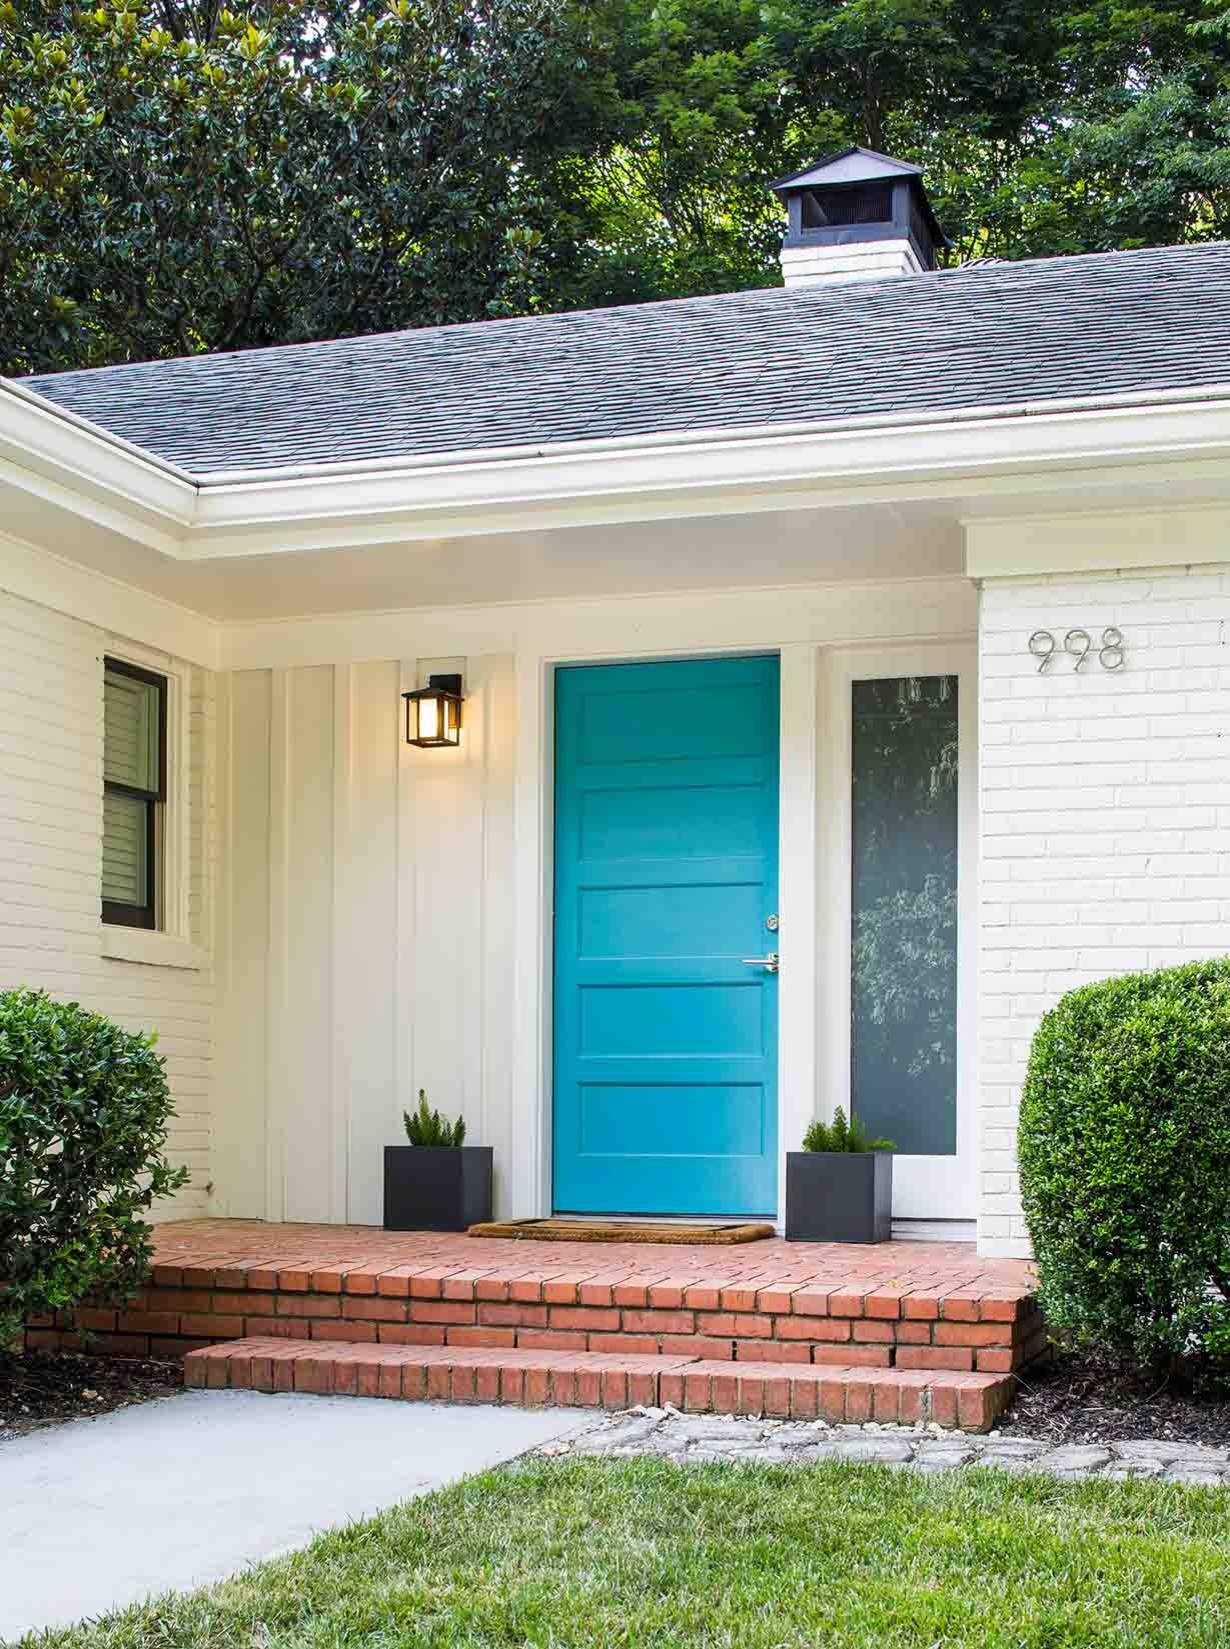 75 Beautiful Mid Century Modern Entryway With A Blue Front Door Pictures Ideas November 2020 Houzz